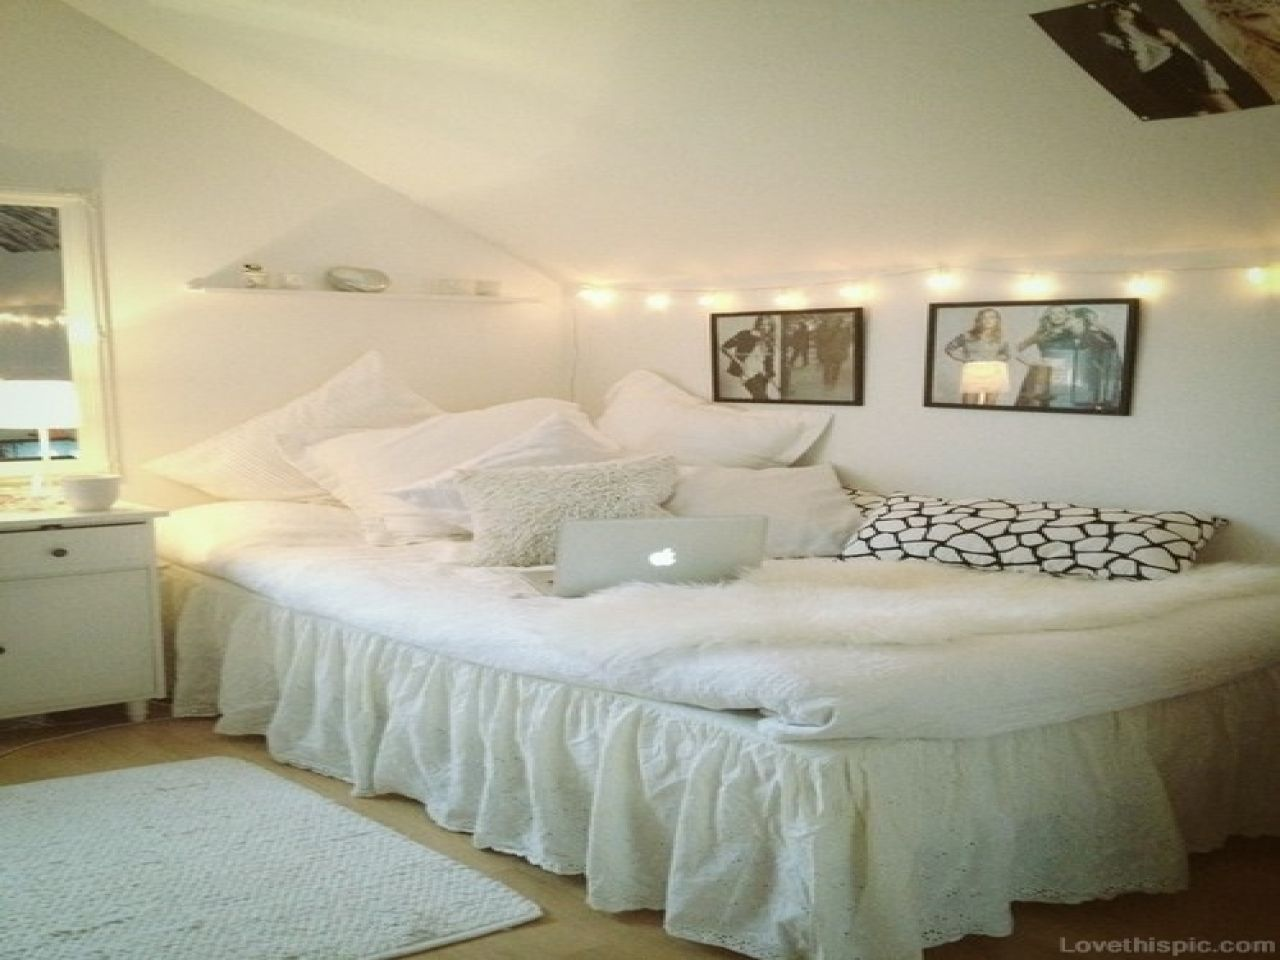 White bedroom ideas tumblr - Cute Girl Bedroom Ideas White Teen Room Chair White Tumblr Room